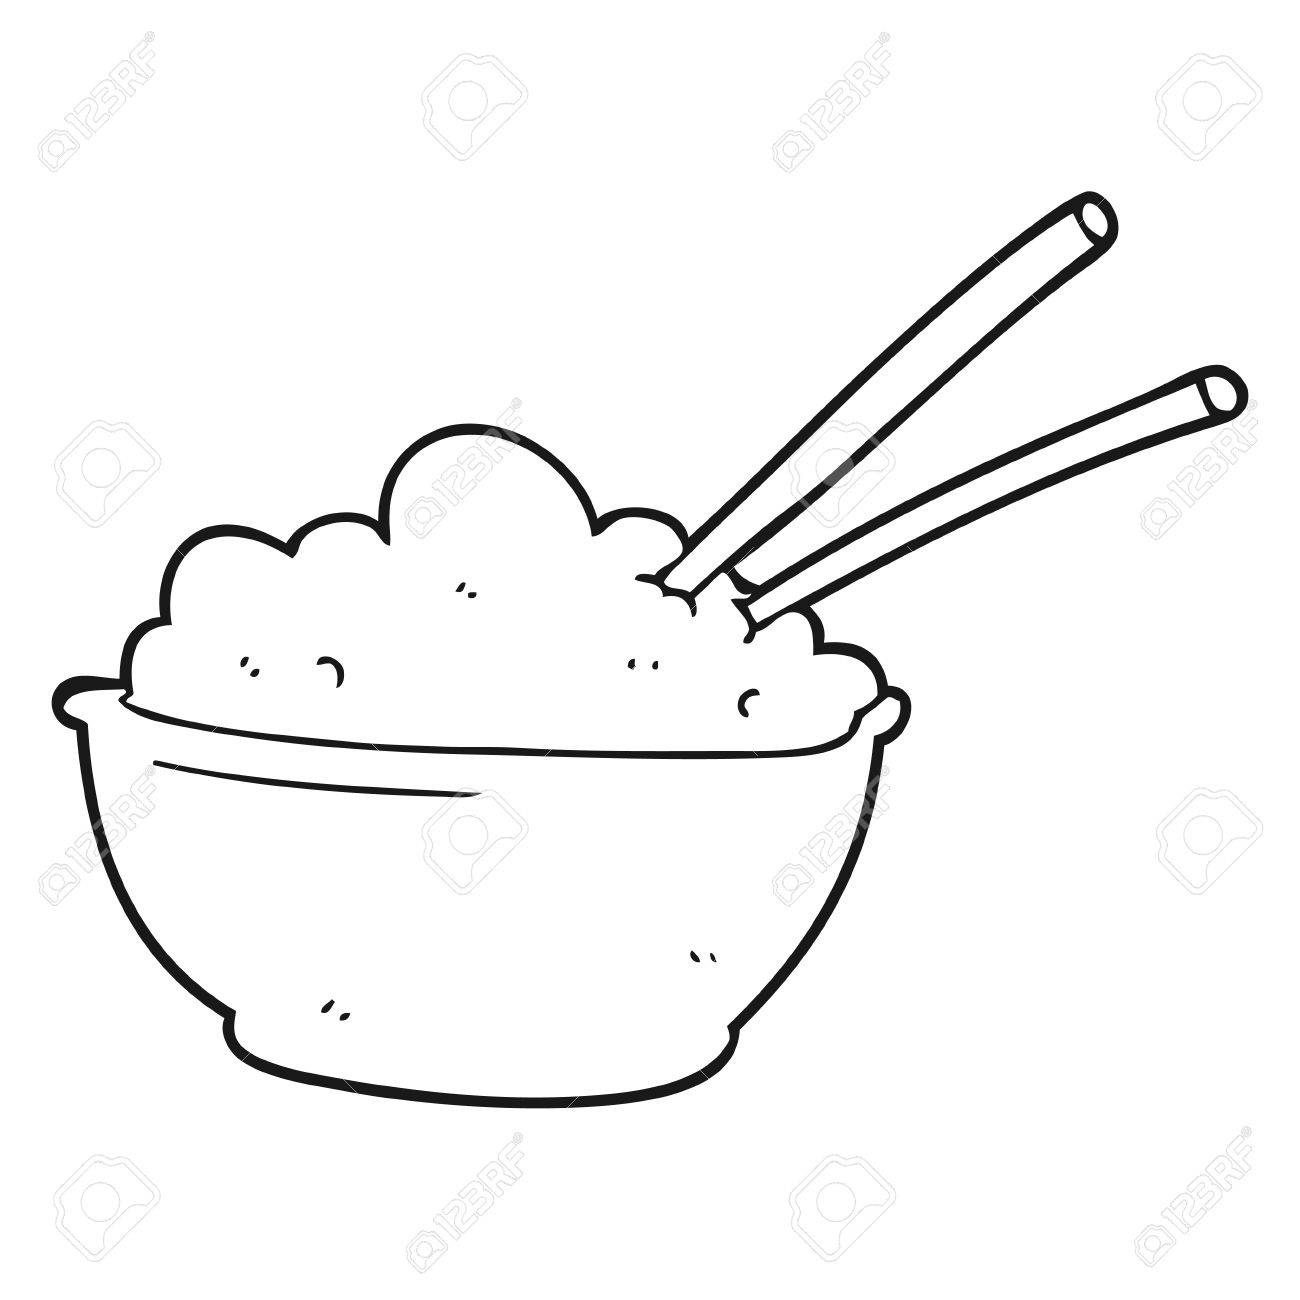 1300x1300 Freehand Drawn Black And White Cartoon Bowl Of Rice Royalty Free